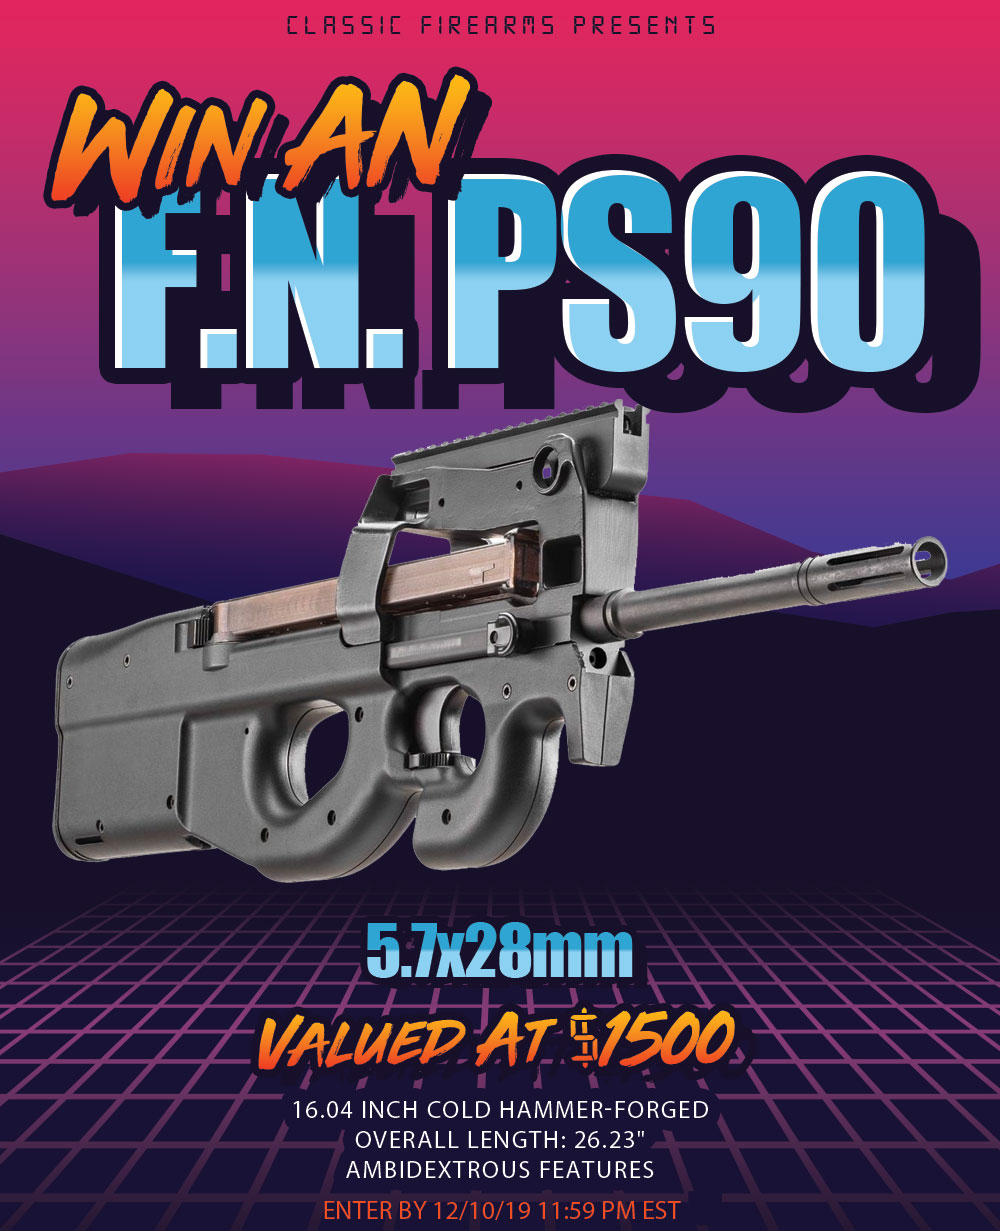 Contest - Win An FN PS90 Rifle